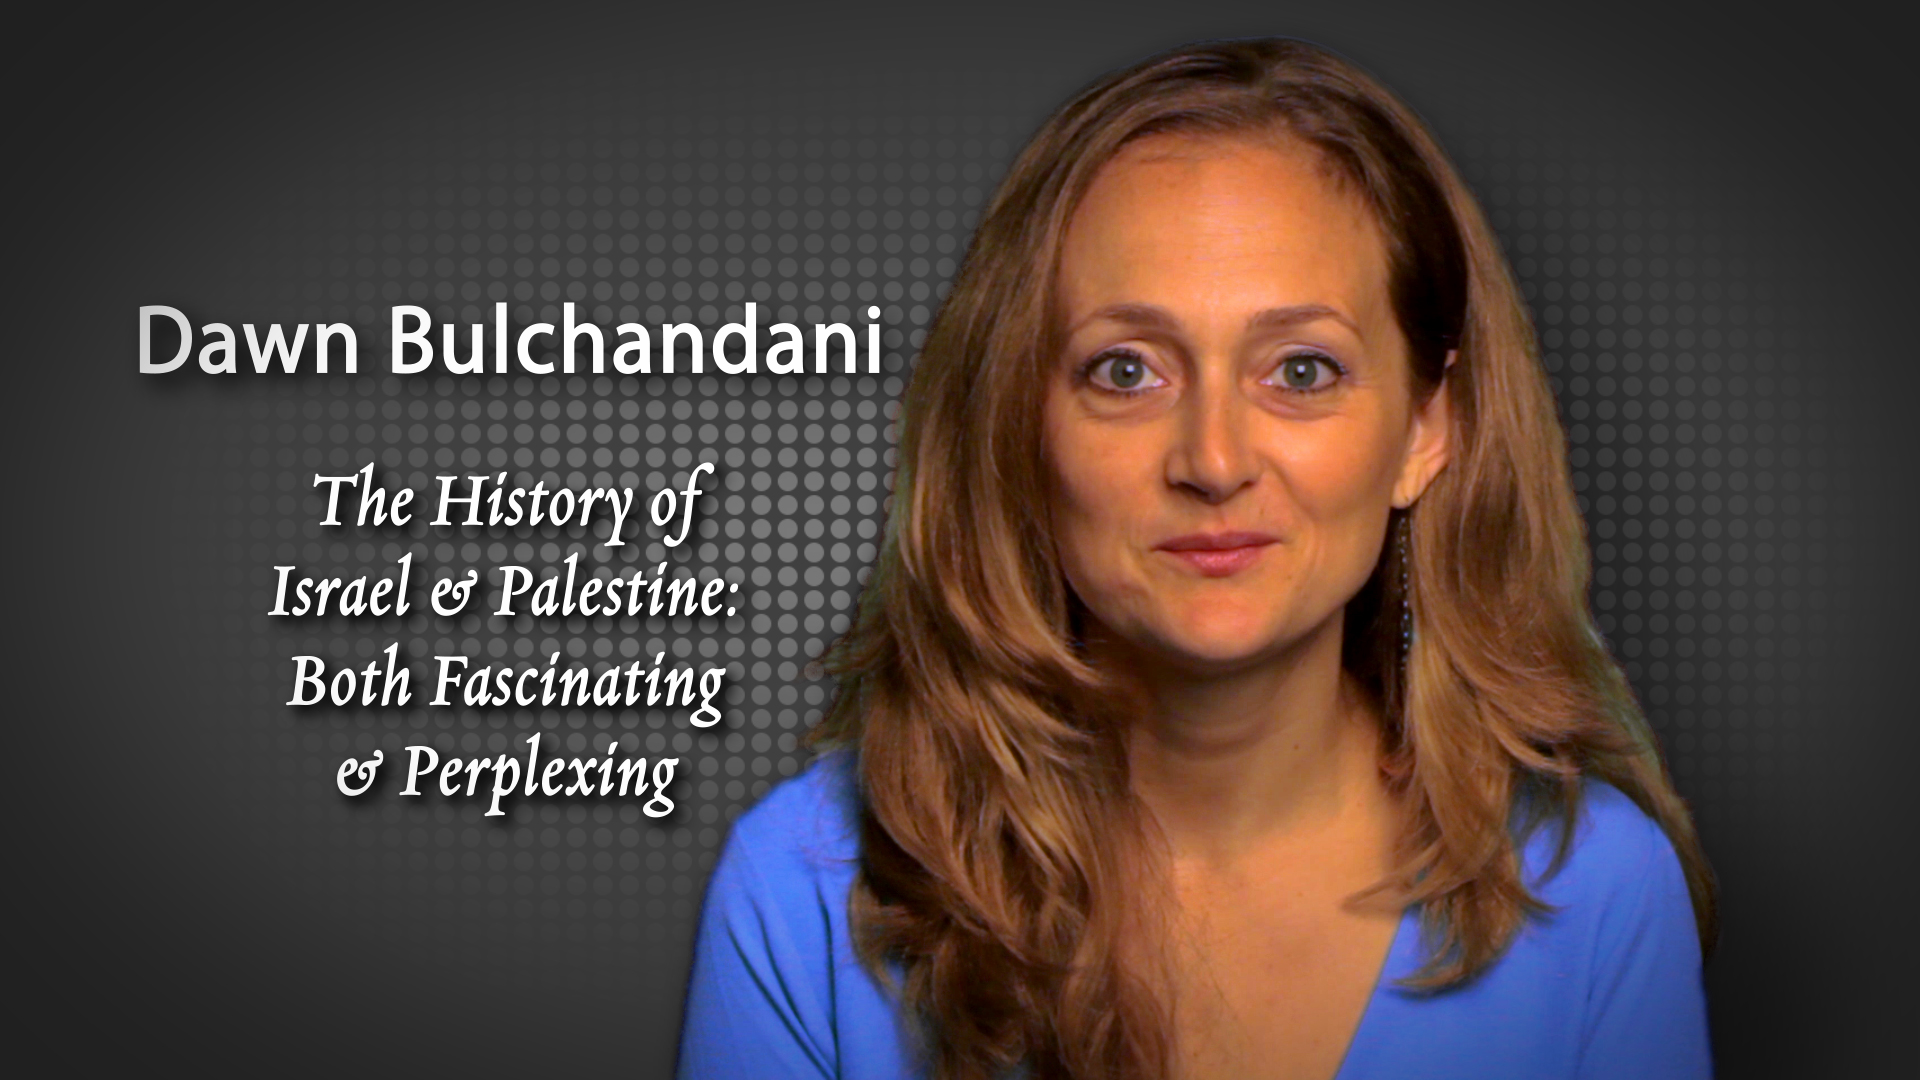 SU for Seniors Dawn Bulchandani Presenter Video. Click to view.